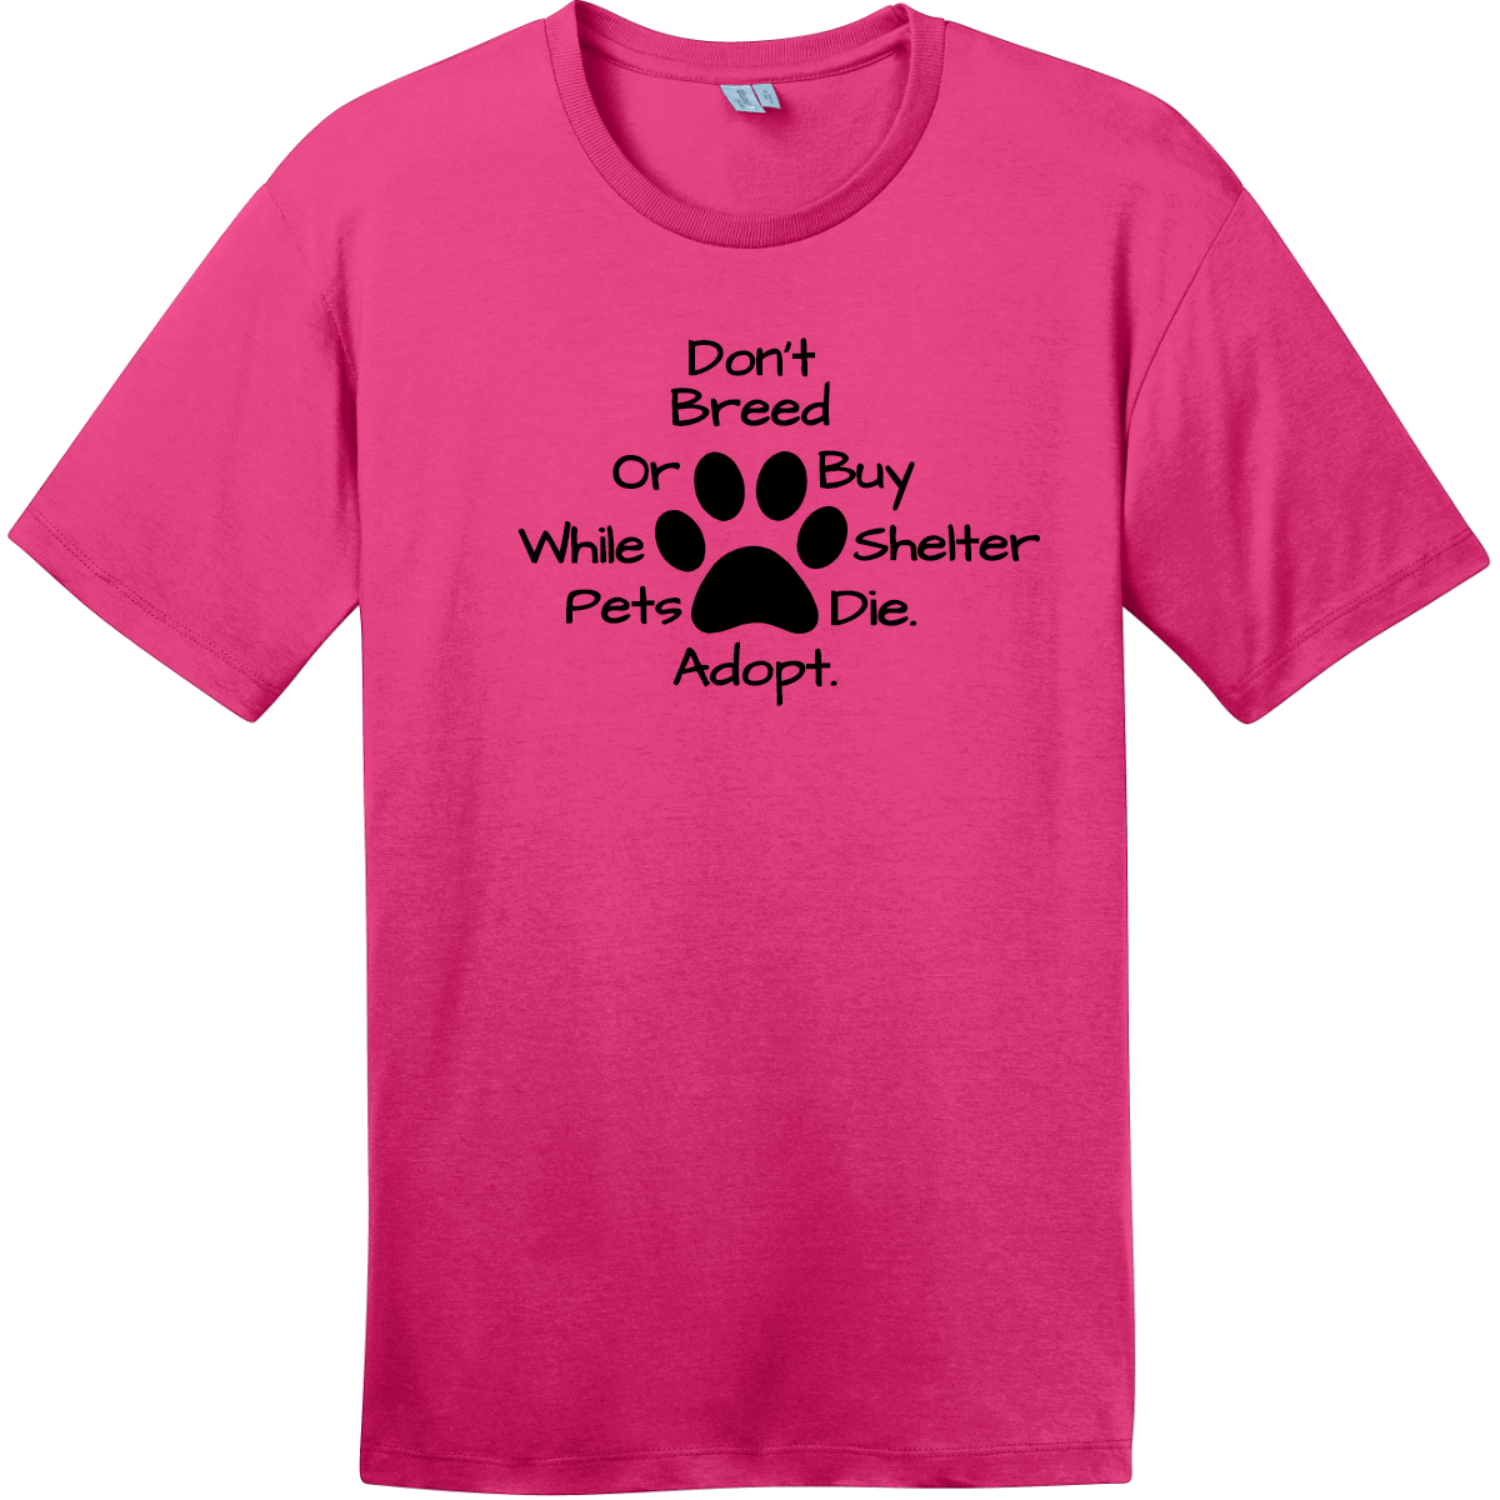 Don't Breed Or Buy While Shelter Pets Die T-Shirt Dark Fuchsia District Perfect Weight Tee DT104